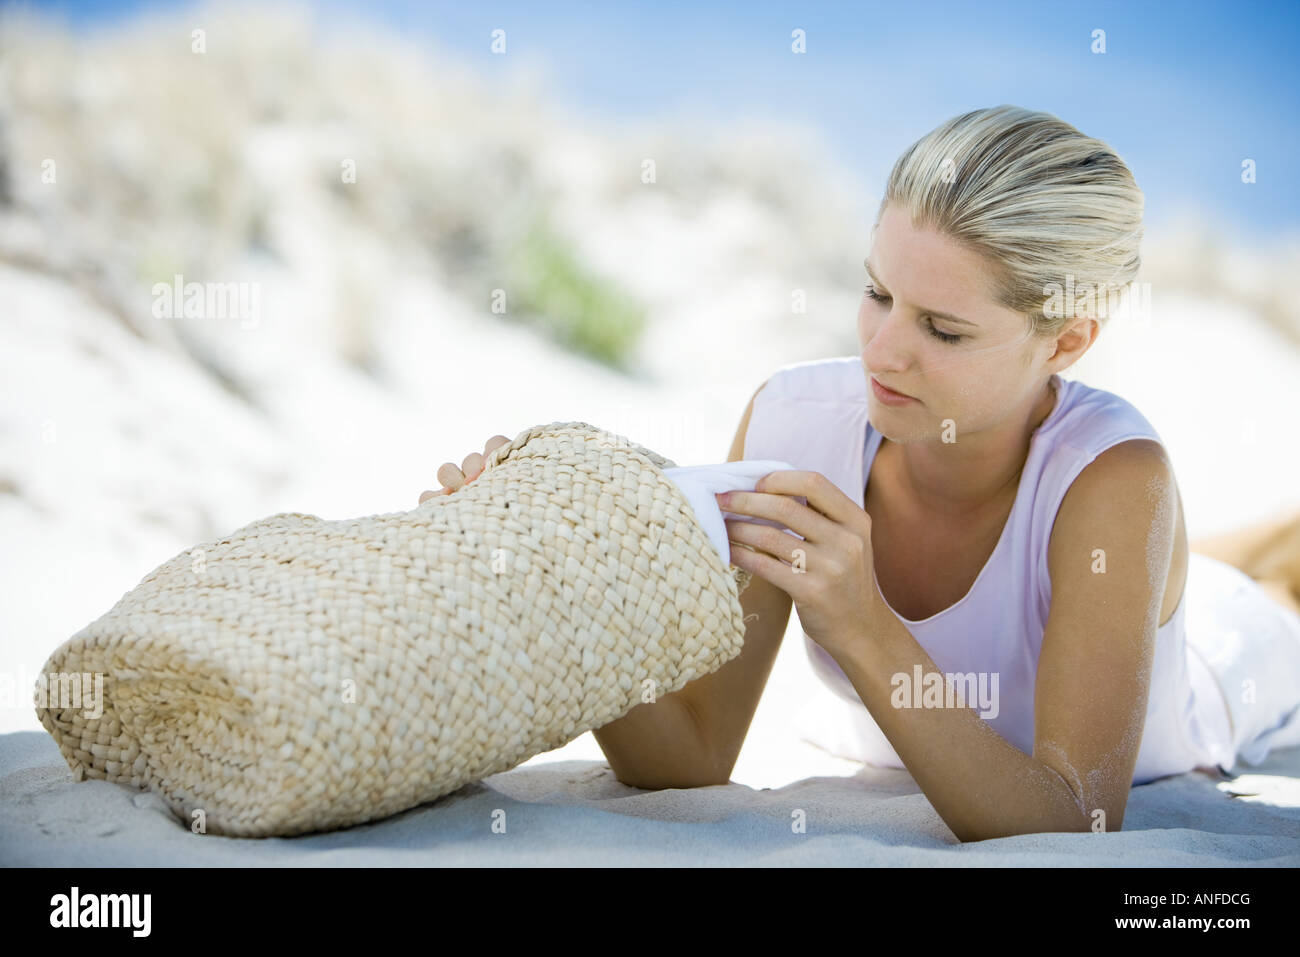 Young woman lying on beach, looking through beach bag - Stock Image